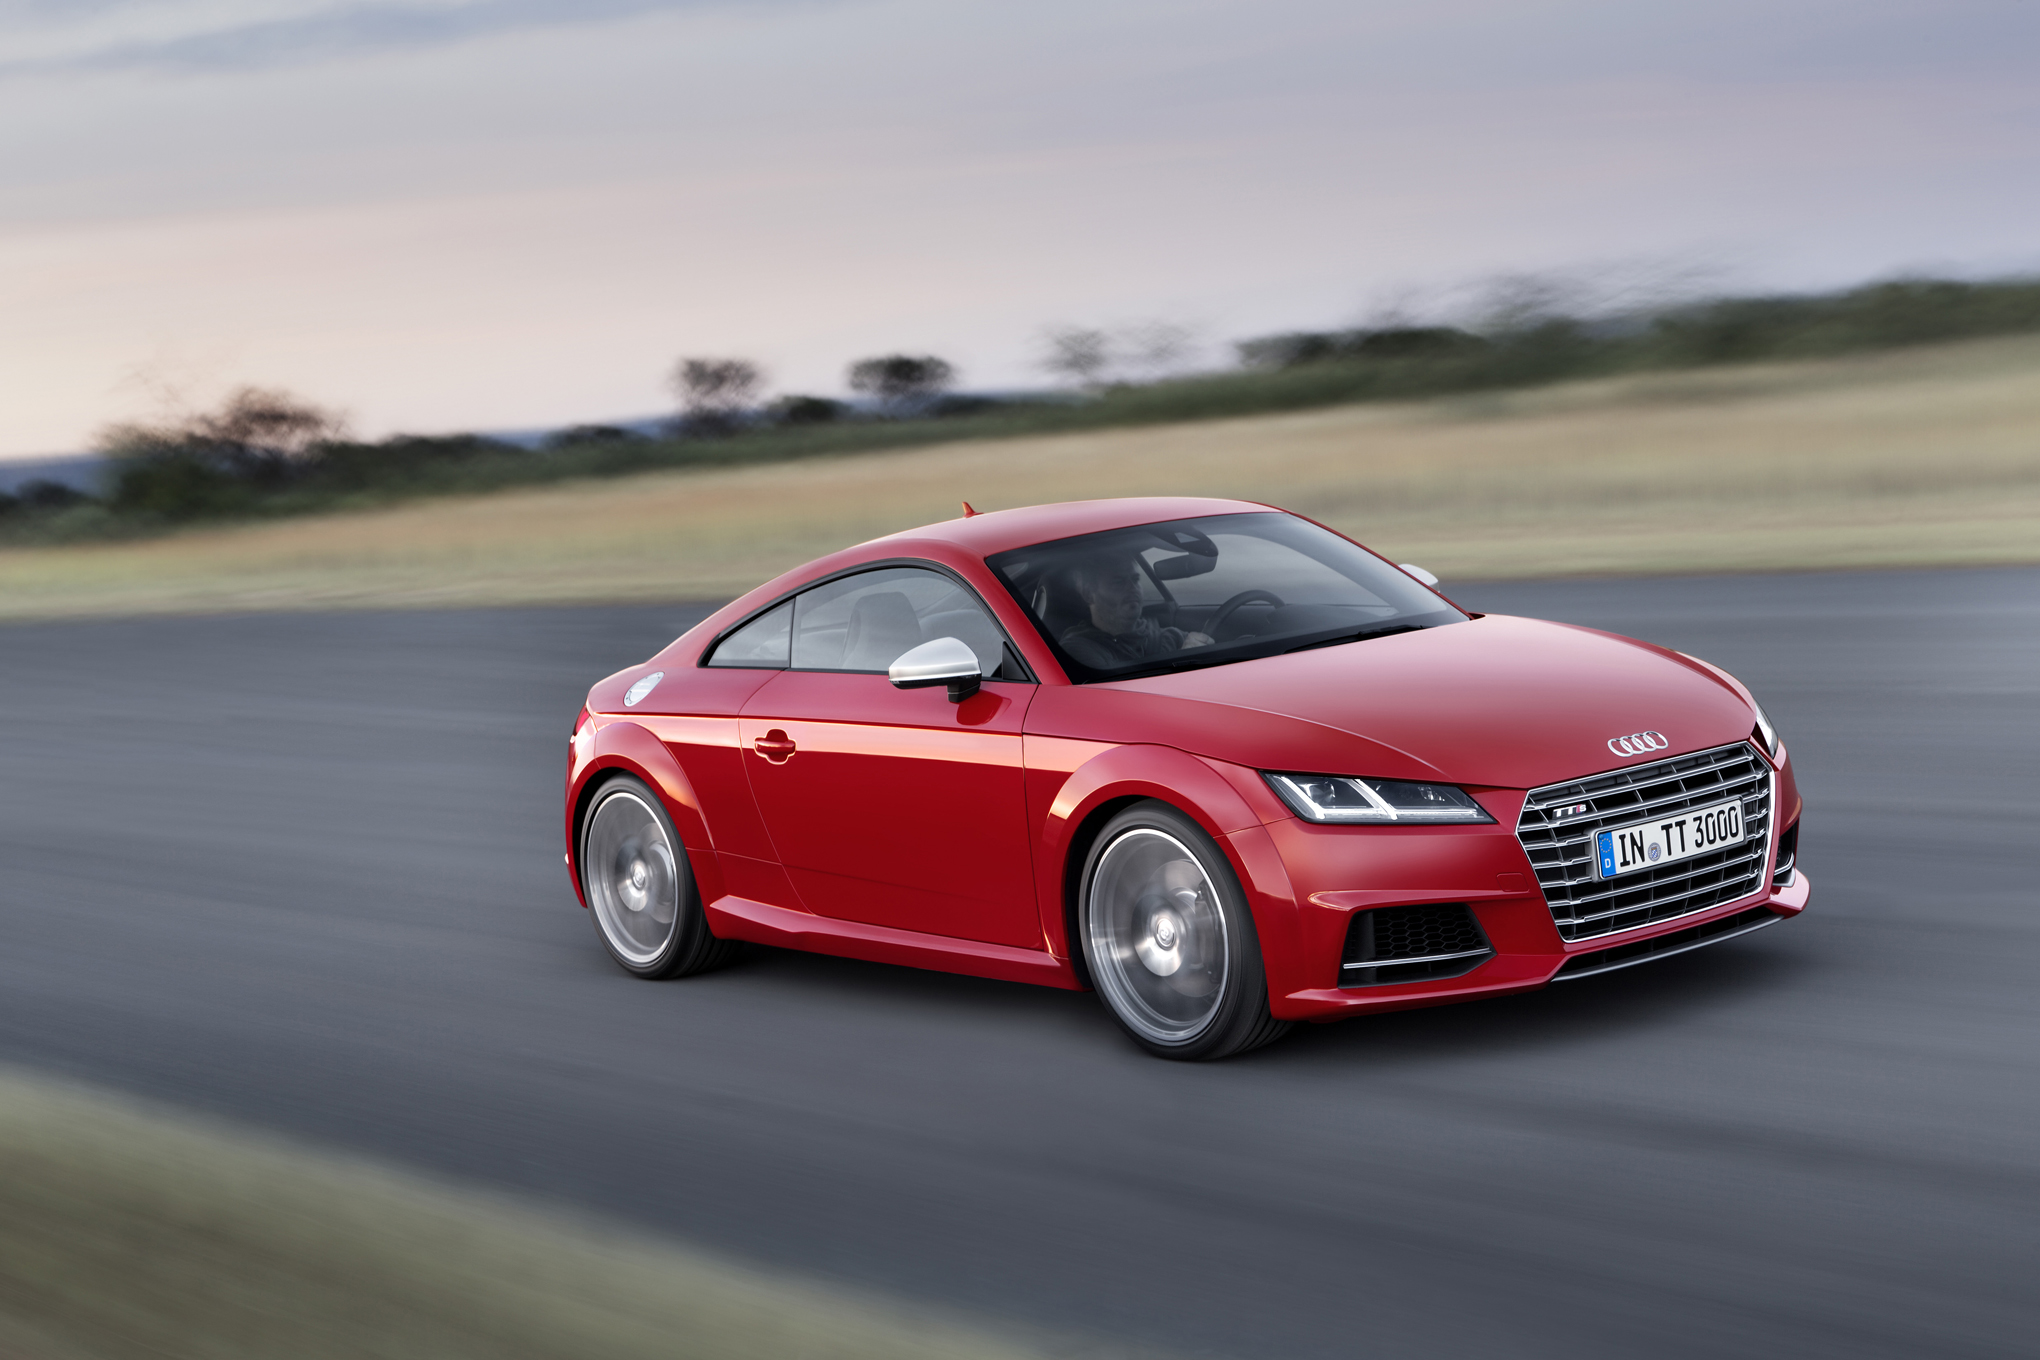 2016 Audi TT and TTS Slated for U.S. Debut in Los Angeles - Motor Trend